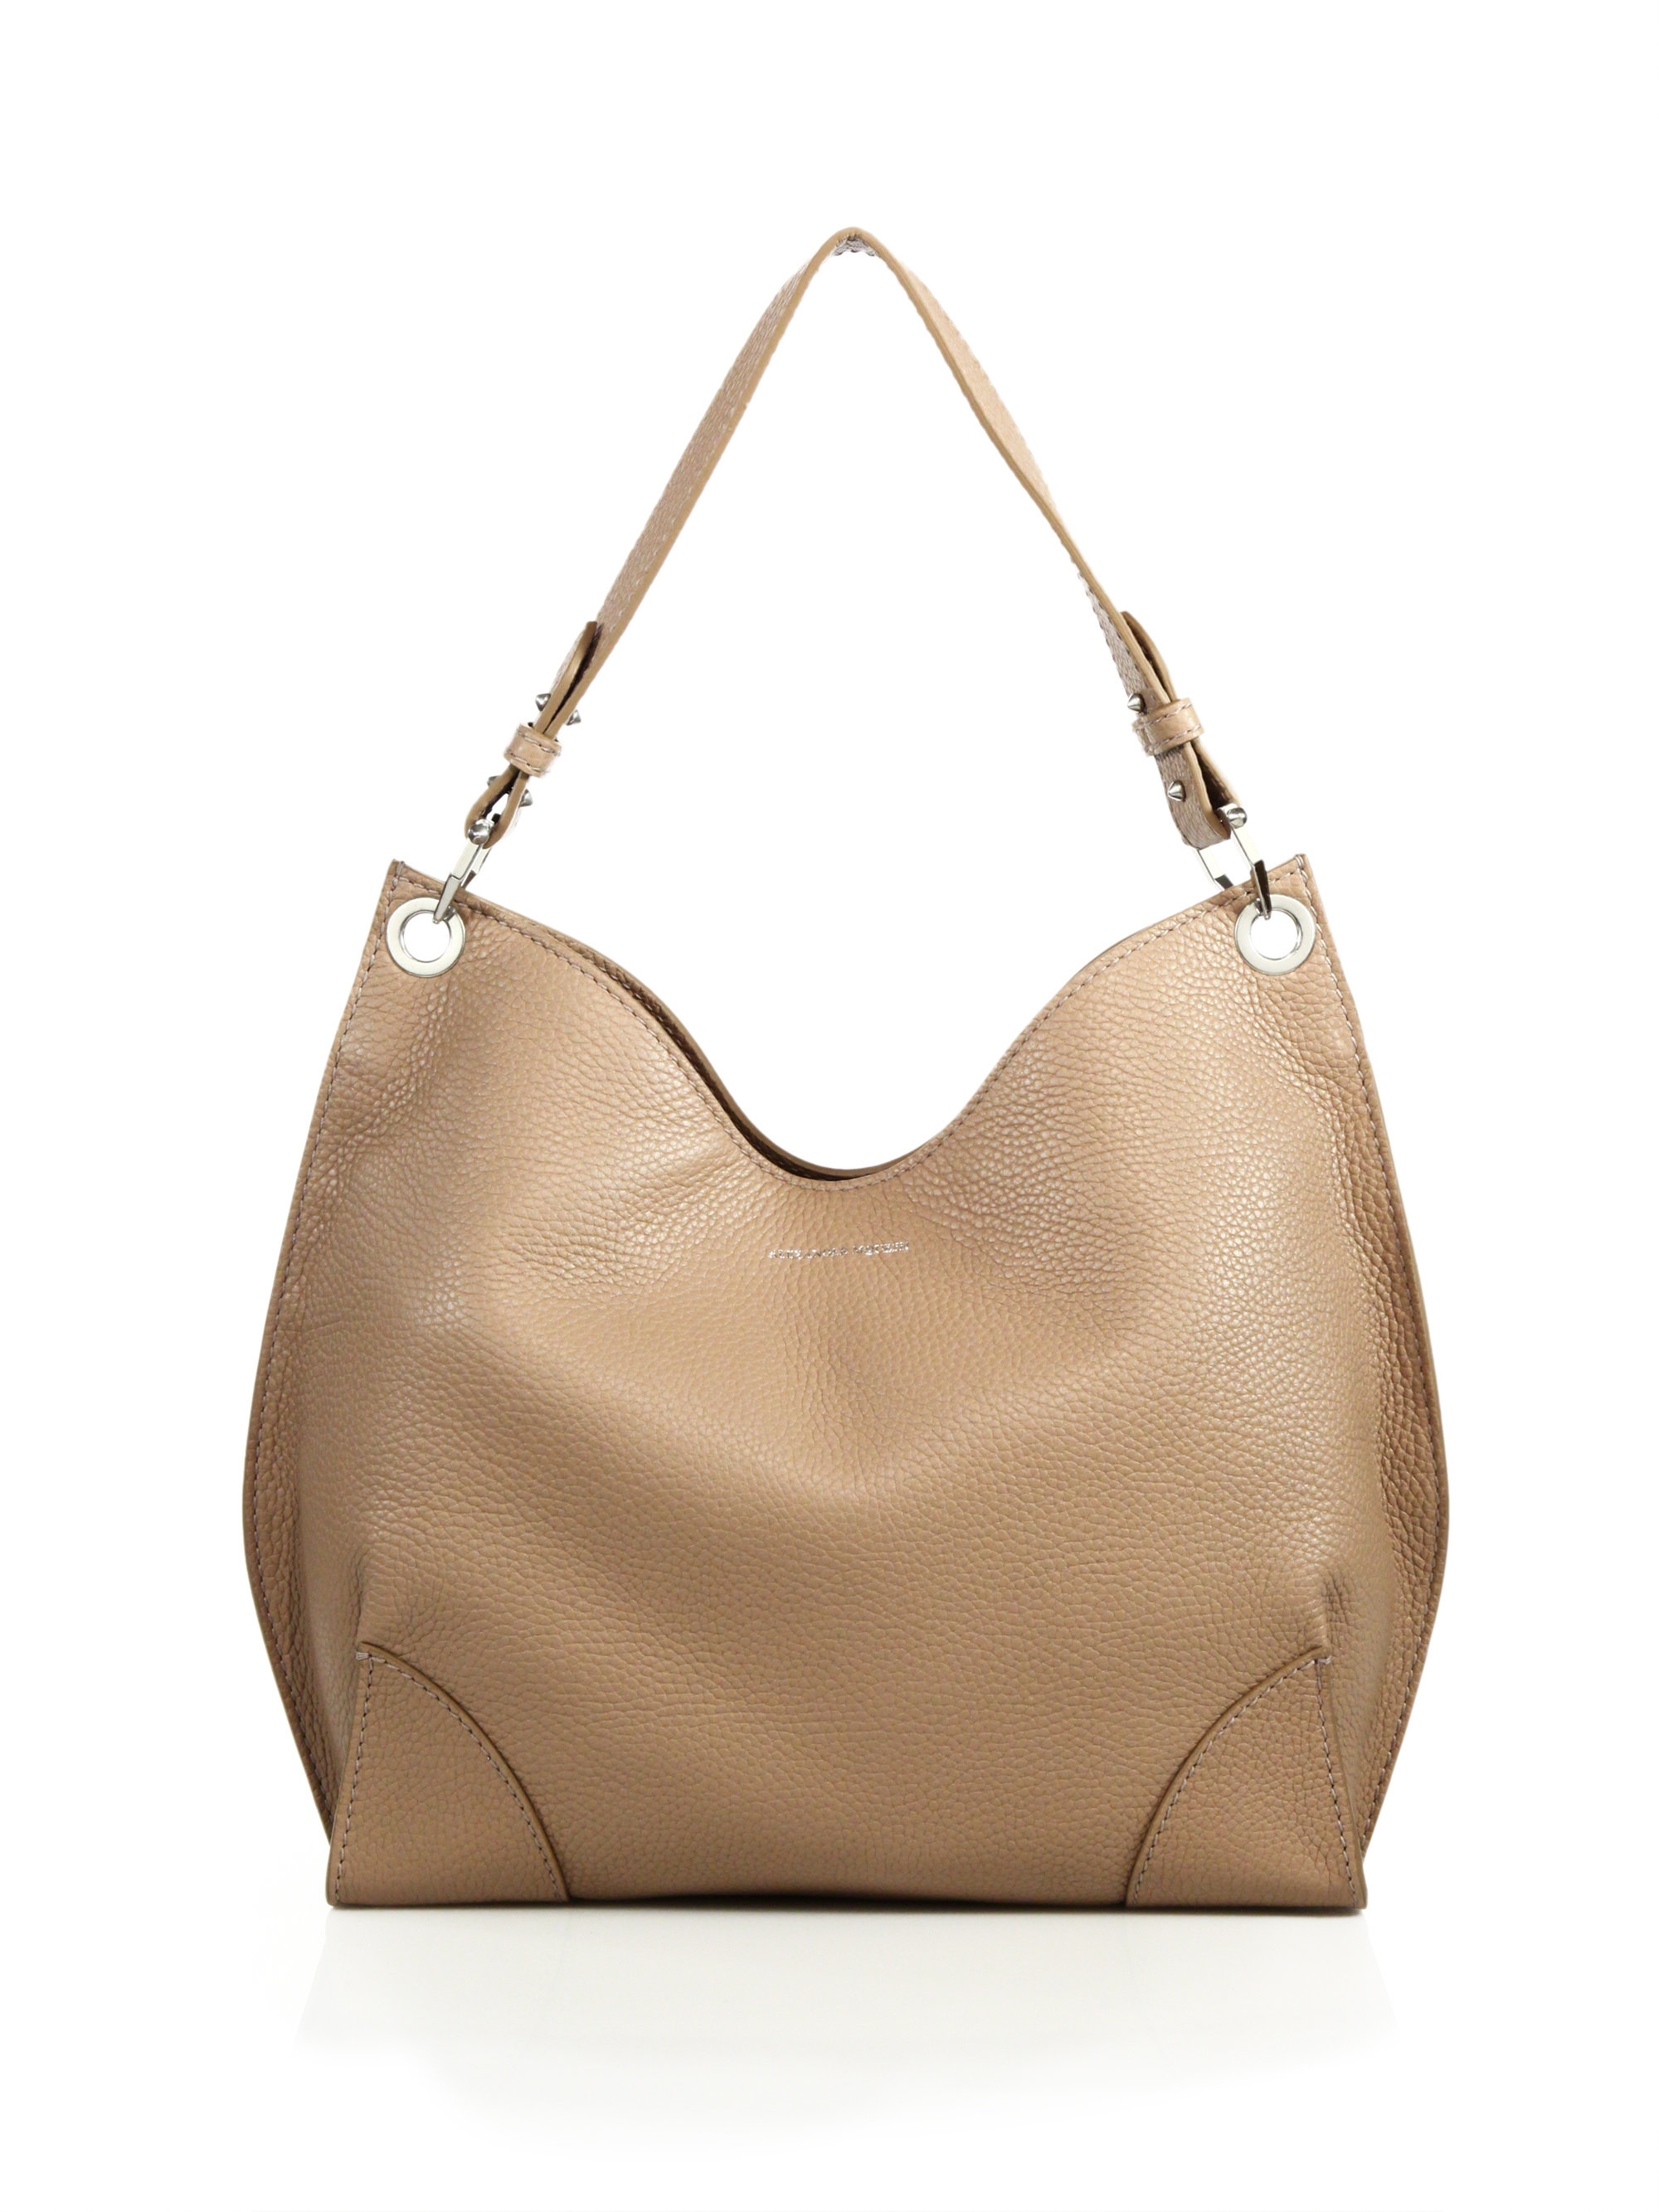 1774be6a57 Lyst - Alexander McQueen Legend Small Leather Hobo Bag in Natural